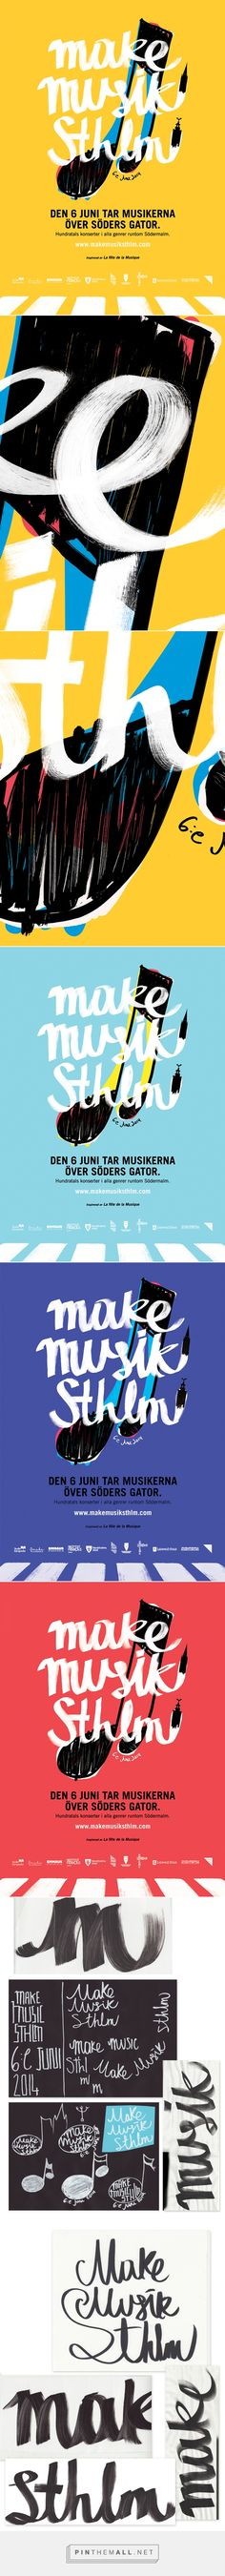 https://www.behance.net/gallery/16008609/Poster-for-Make-Music-Stockholm-festival